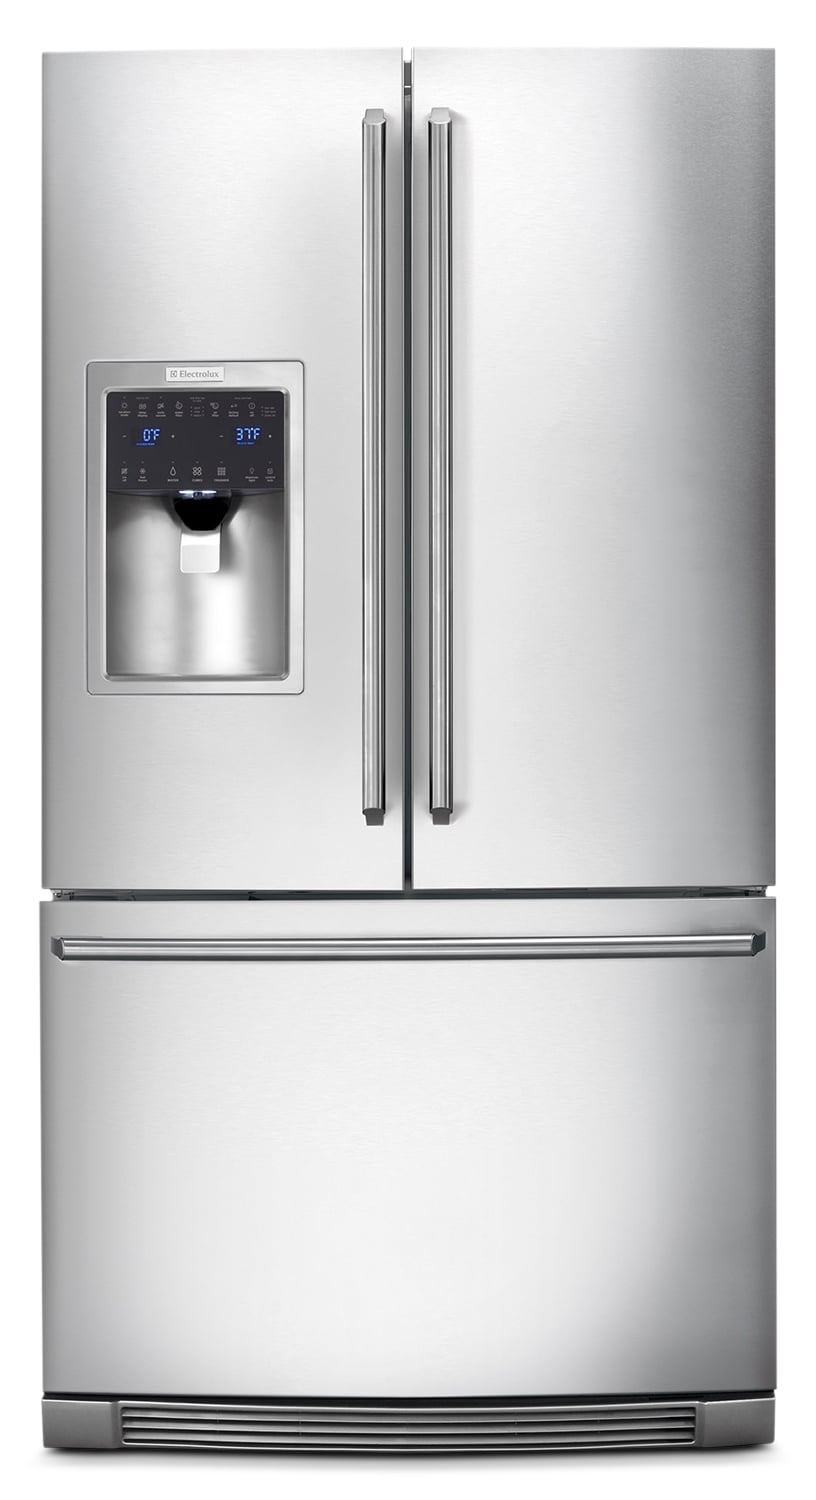 Electrolux Stainless Steel French Door Refrigerator (27.85 Cu. Ft.) - EI28BS65KS